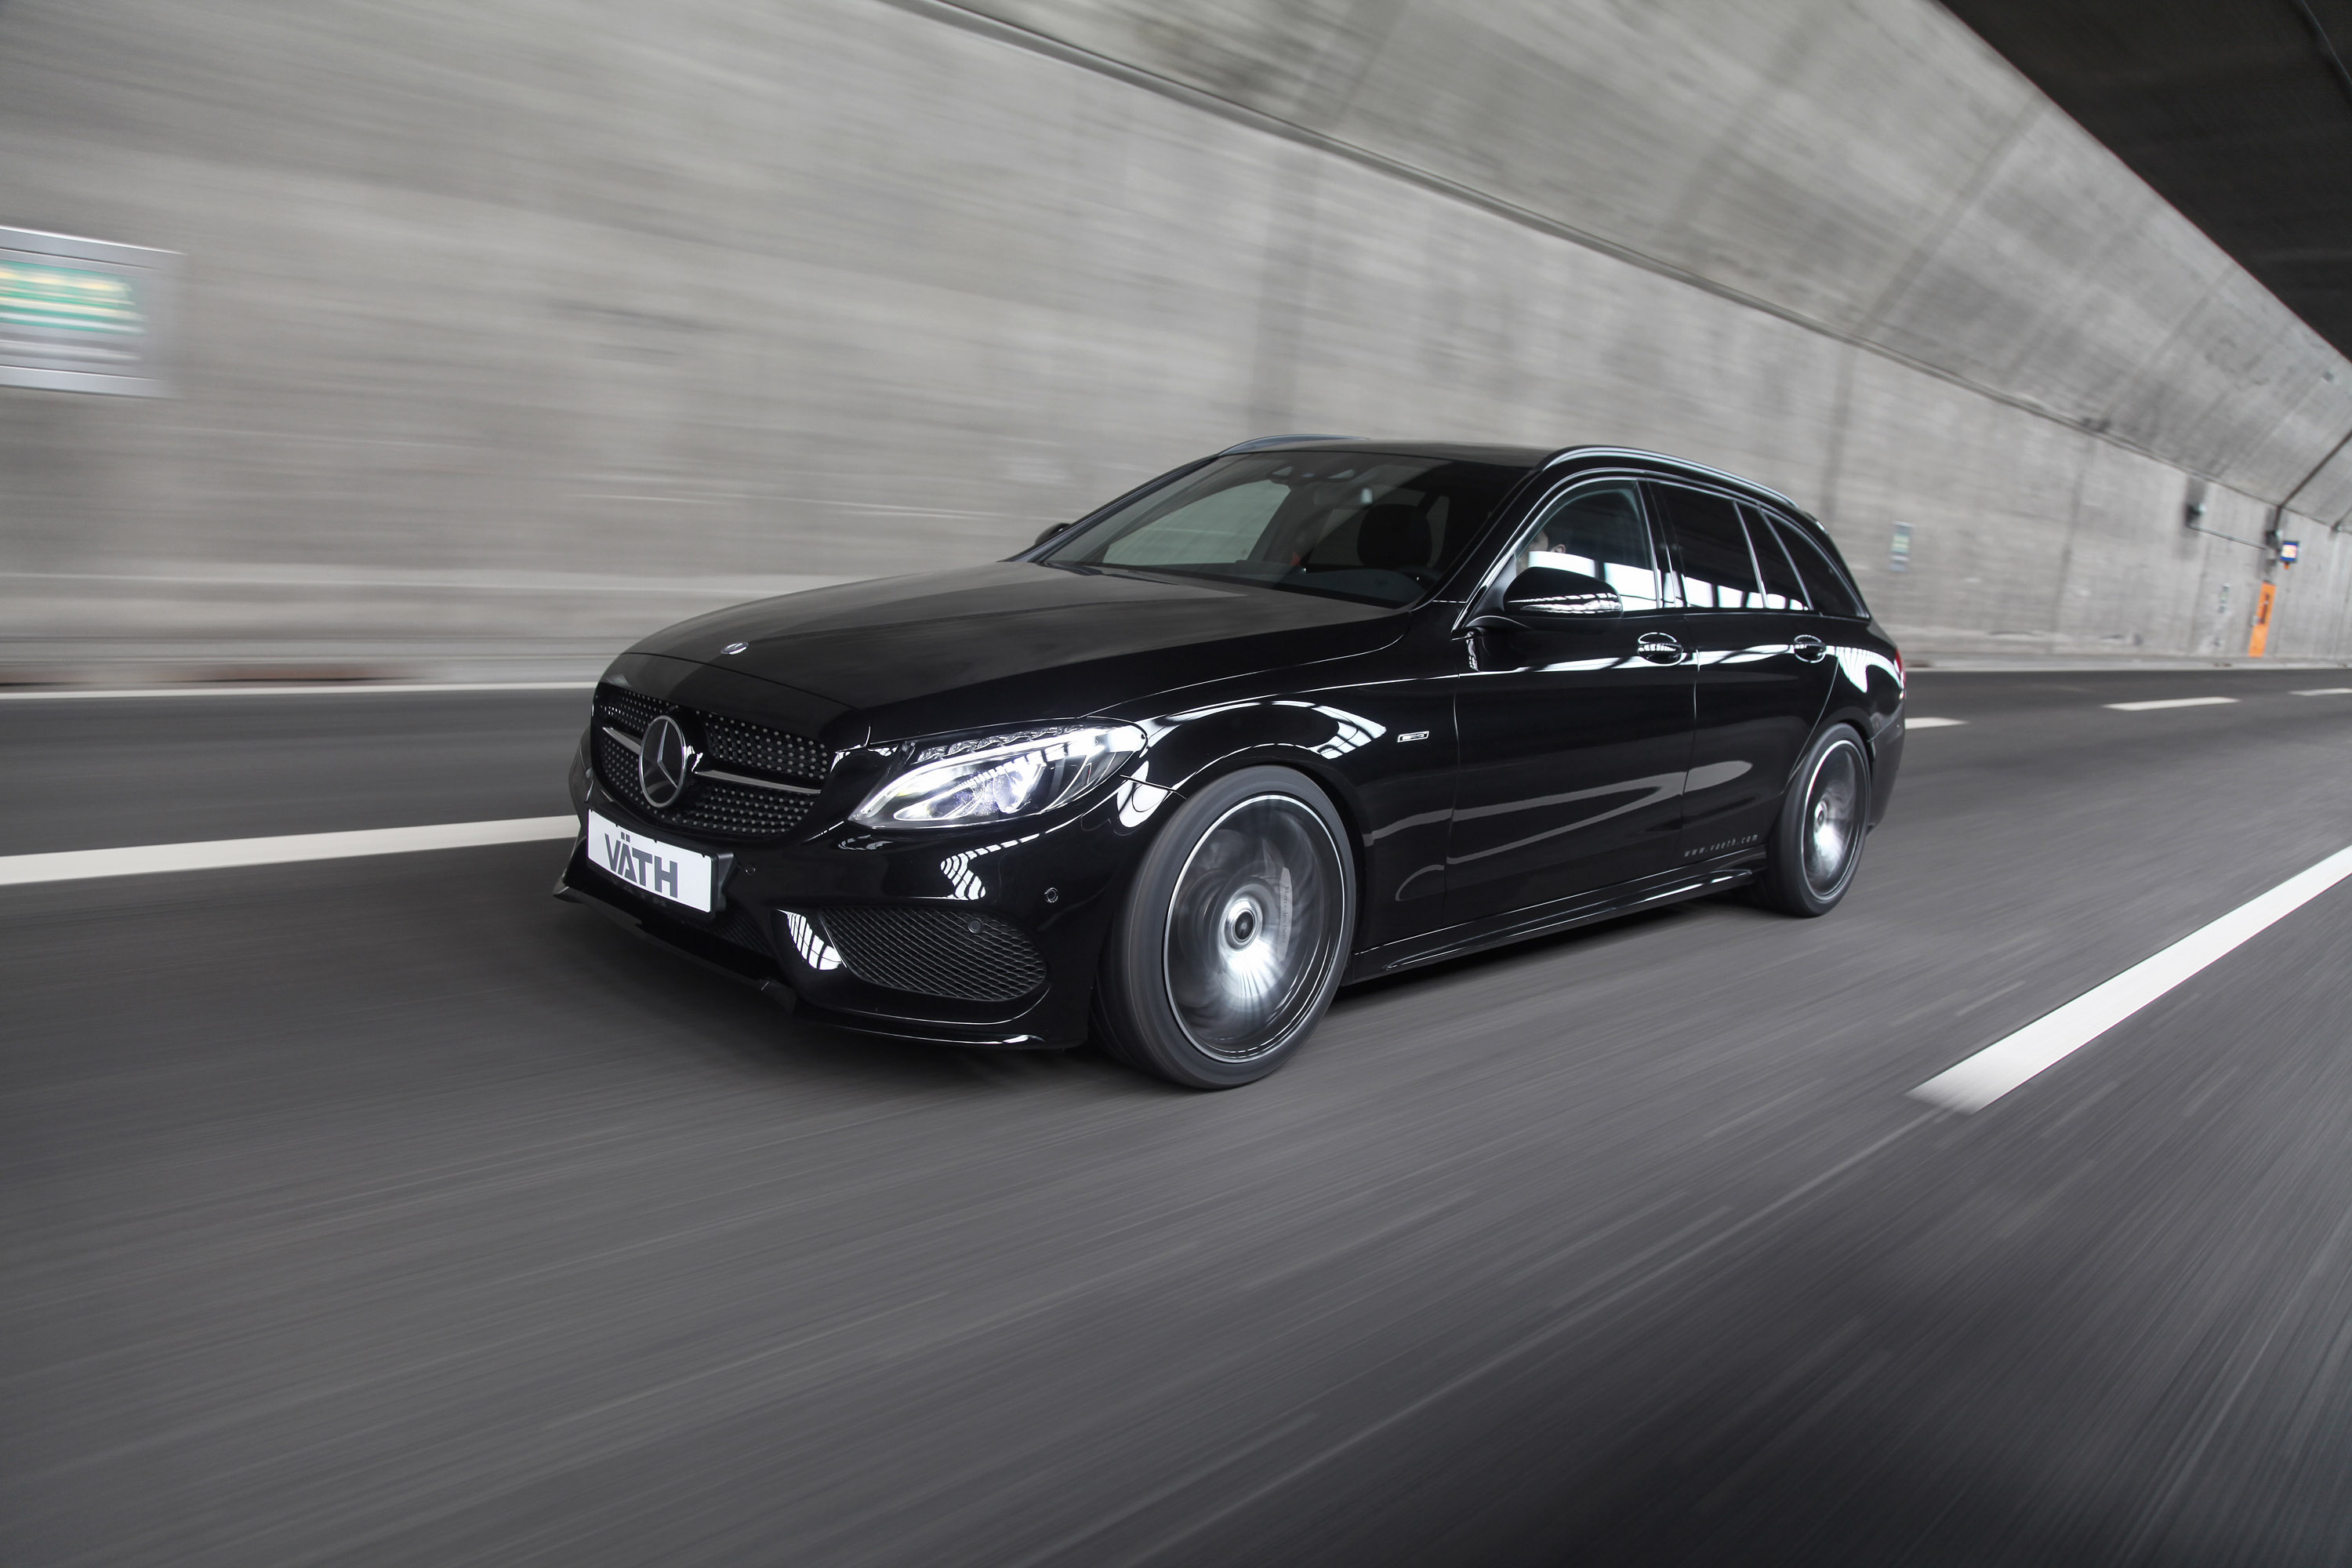 V th releases mercedes benz c450 amg 4matic for 2016 mercedes benz c450 amg 4matic